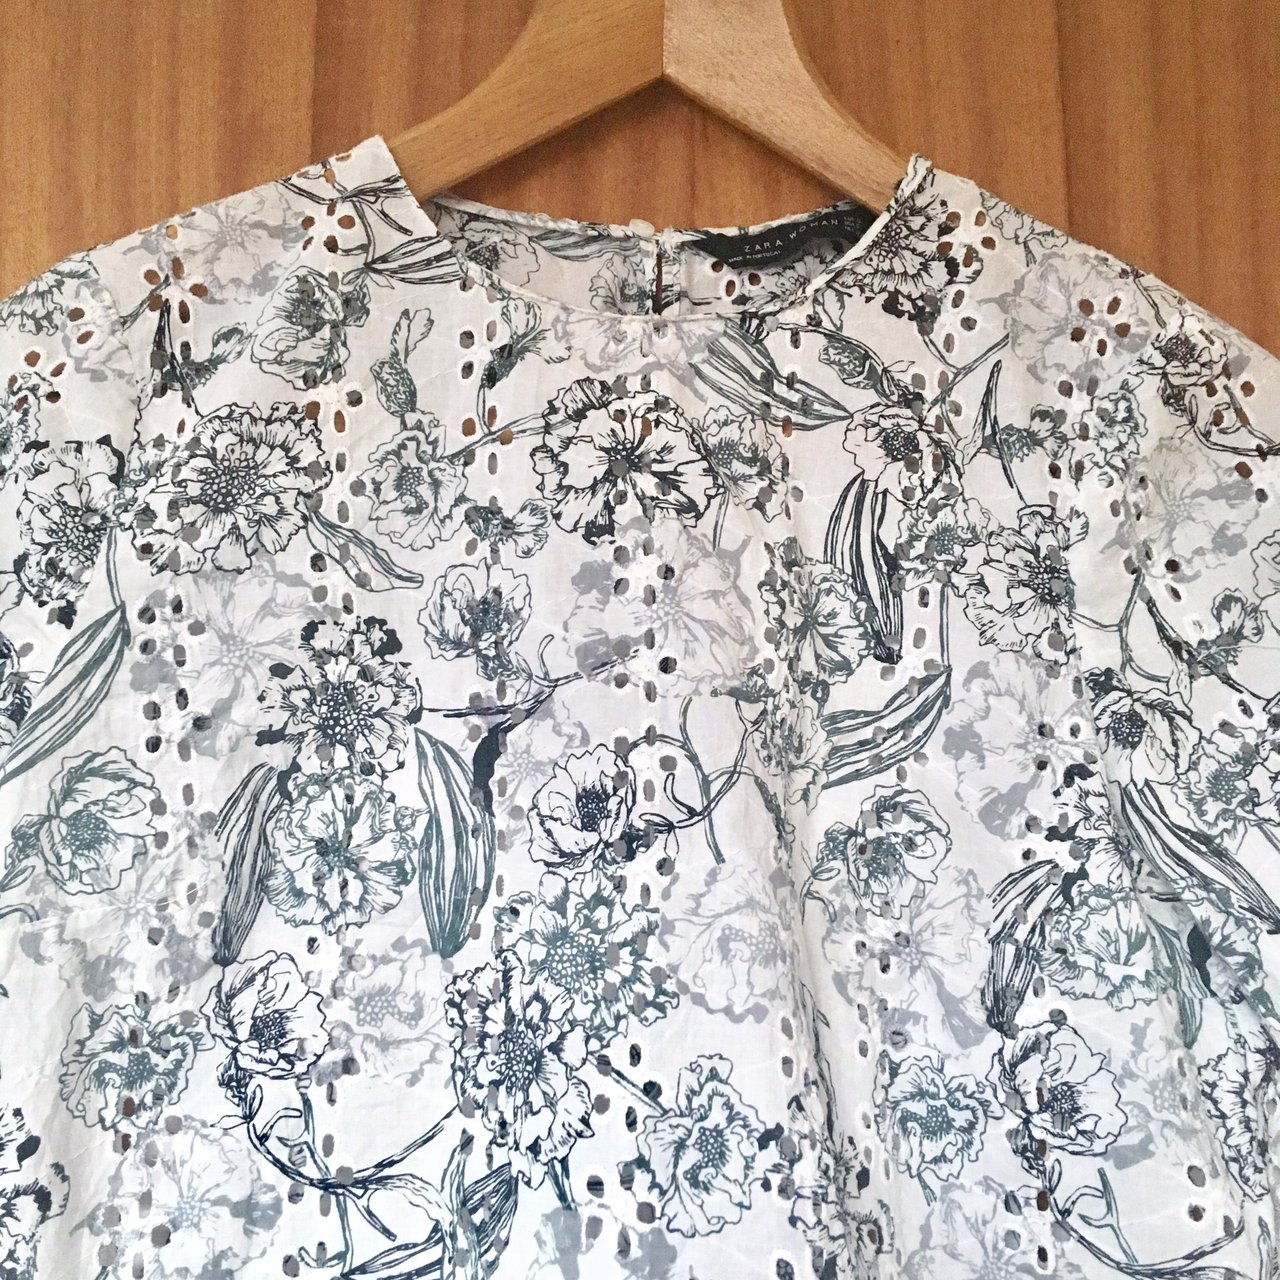 4ceb59b2357 A gorgeous white floral printed top from Zara in a size worn - Depop